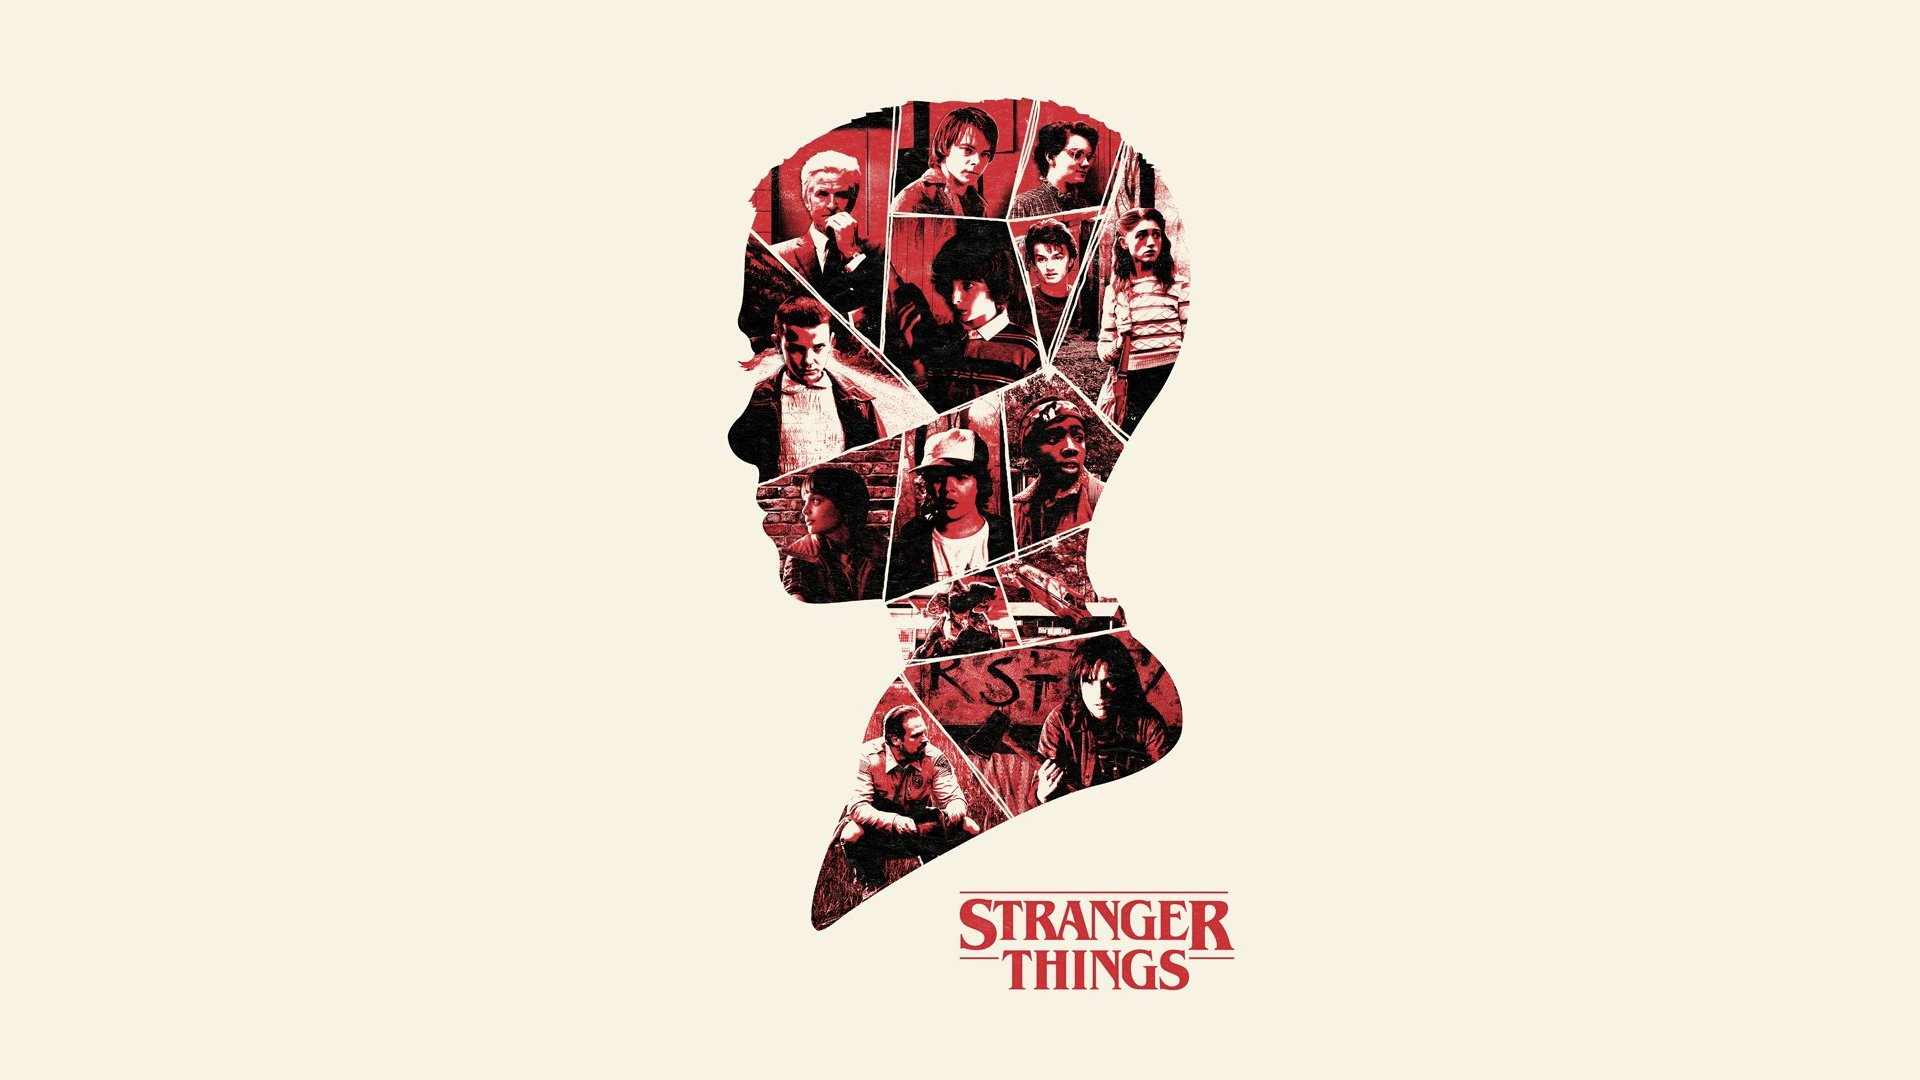 Stranger Things [TV Series] Wallpaper HD 1920x1080